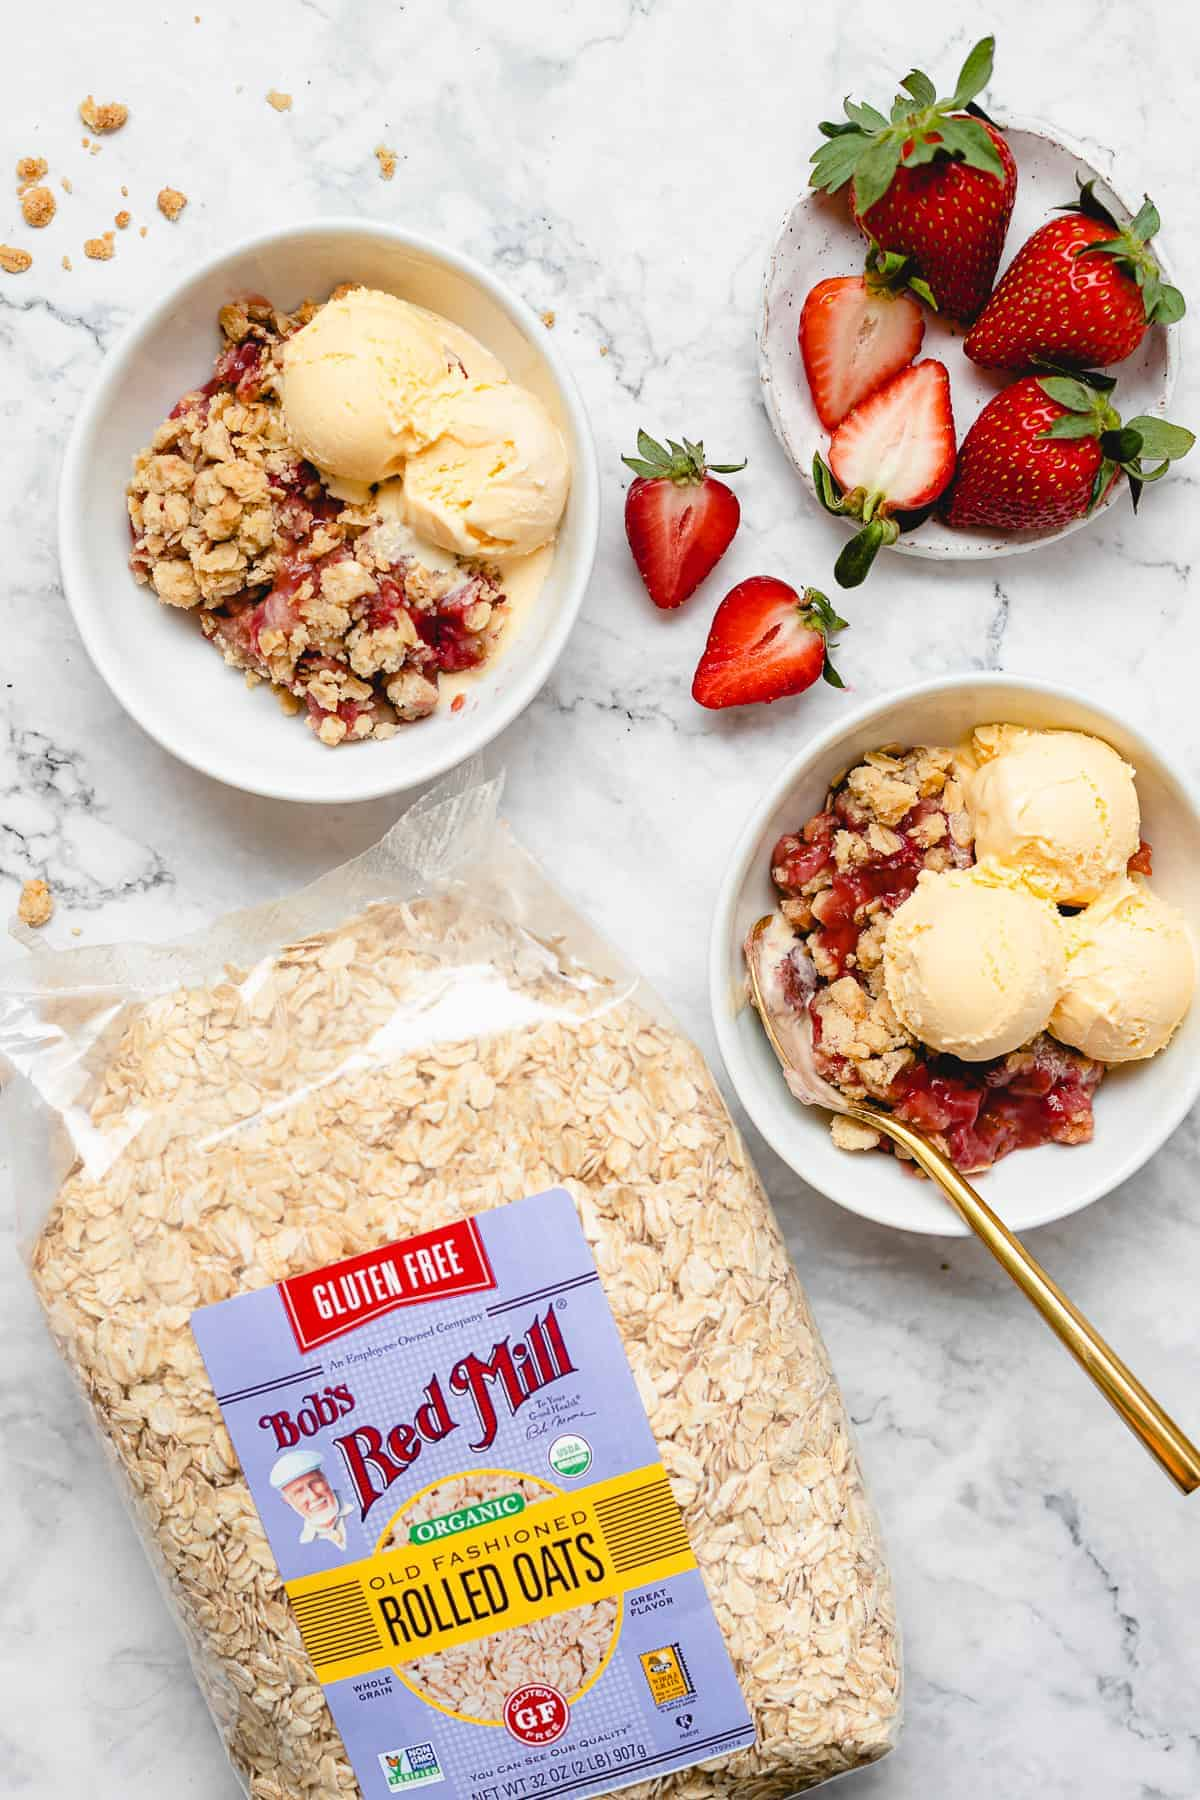 vegan strawberry crisp in two bowls with a bag of oats